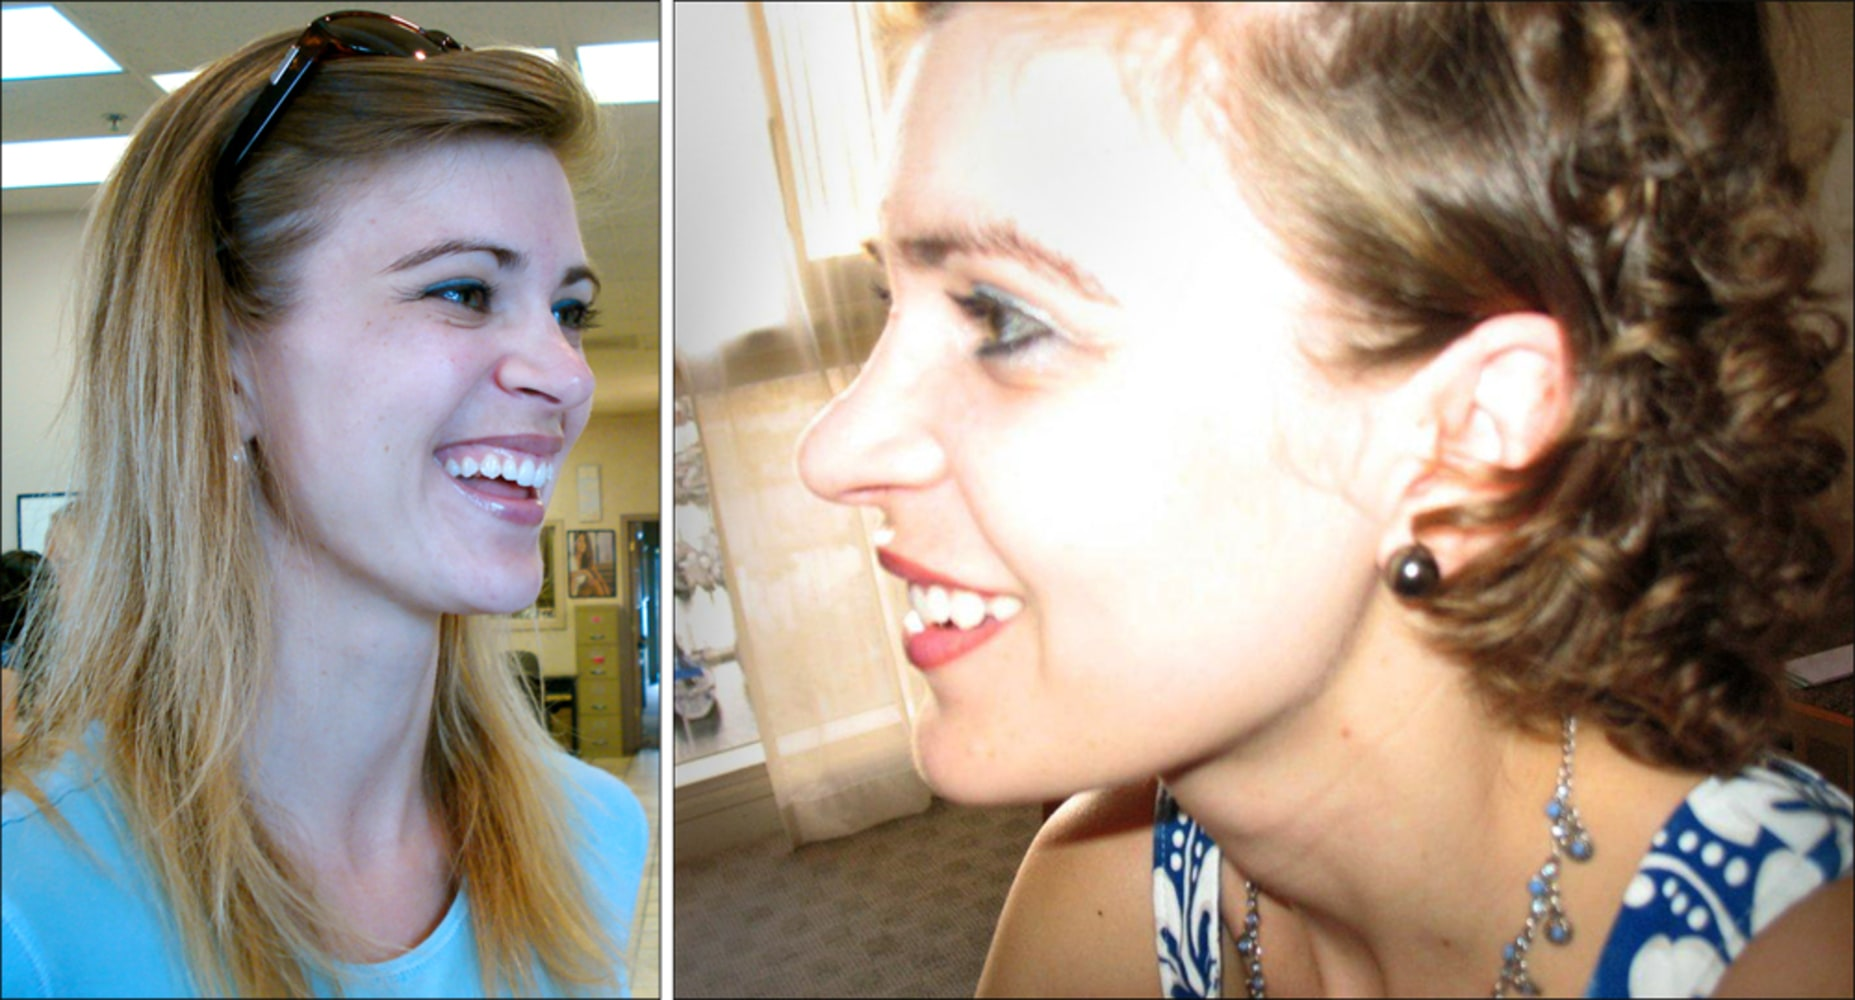 Magnificent Chemo Curls Another Kink In Cancer Recovery Nbc News Hairstyles For Women Draintrainus